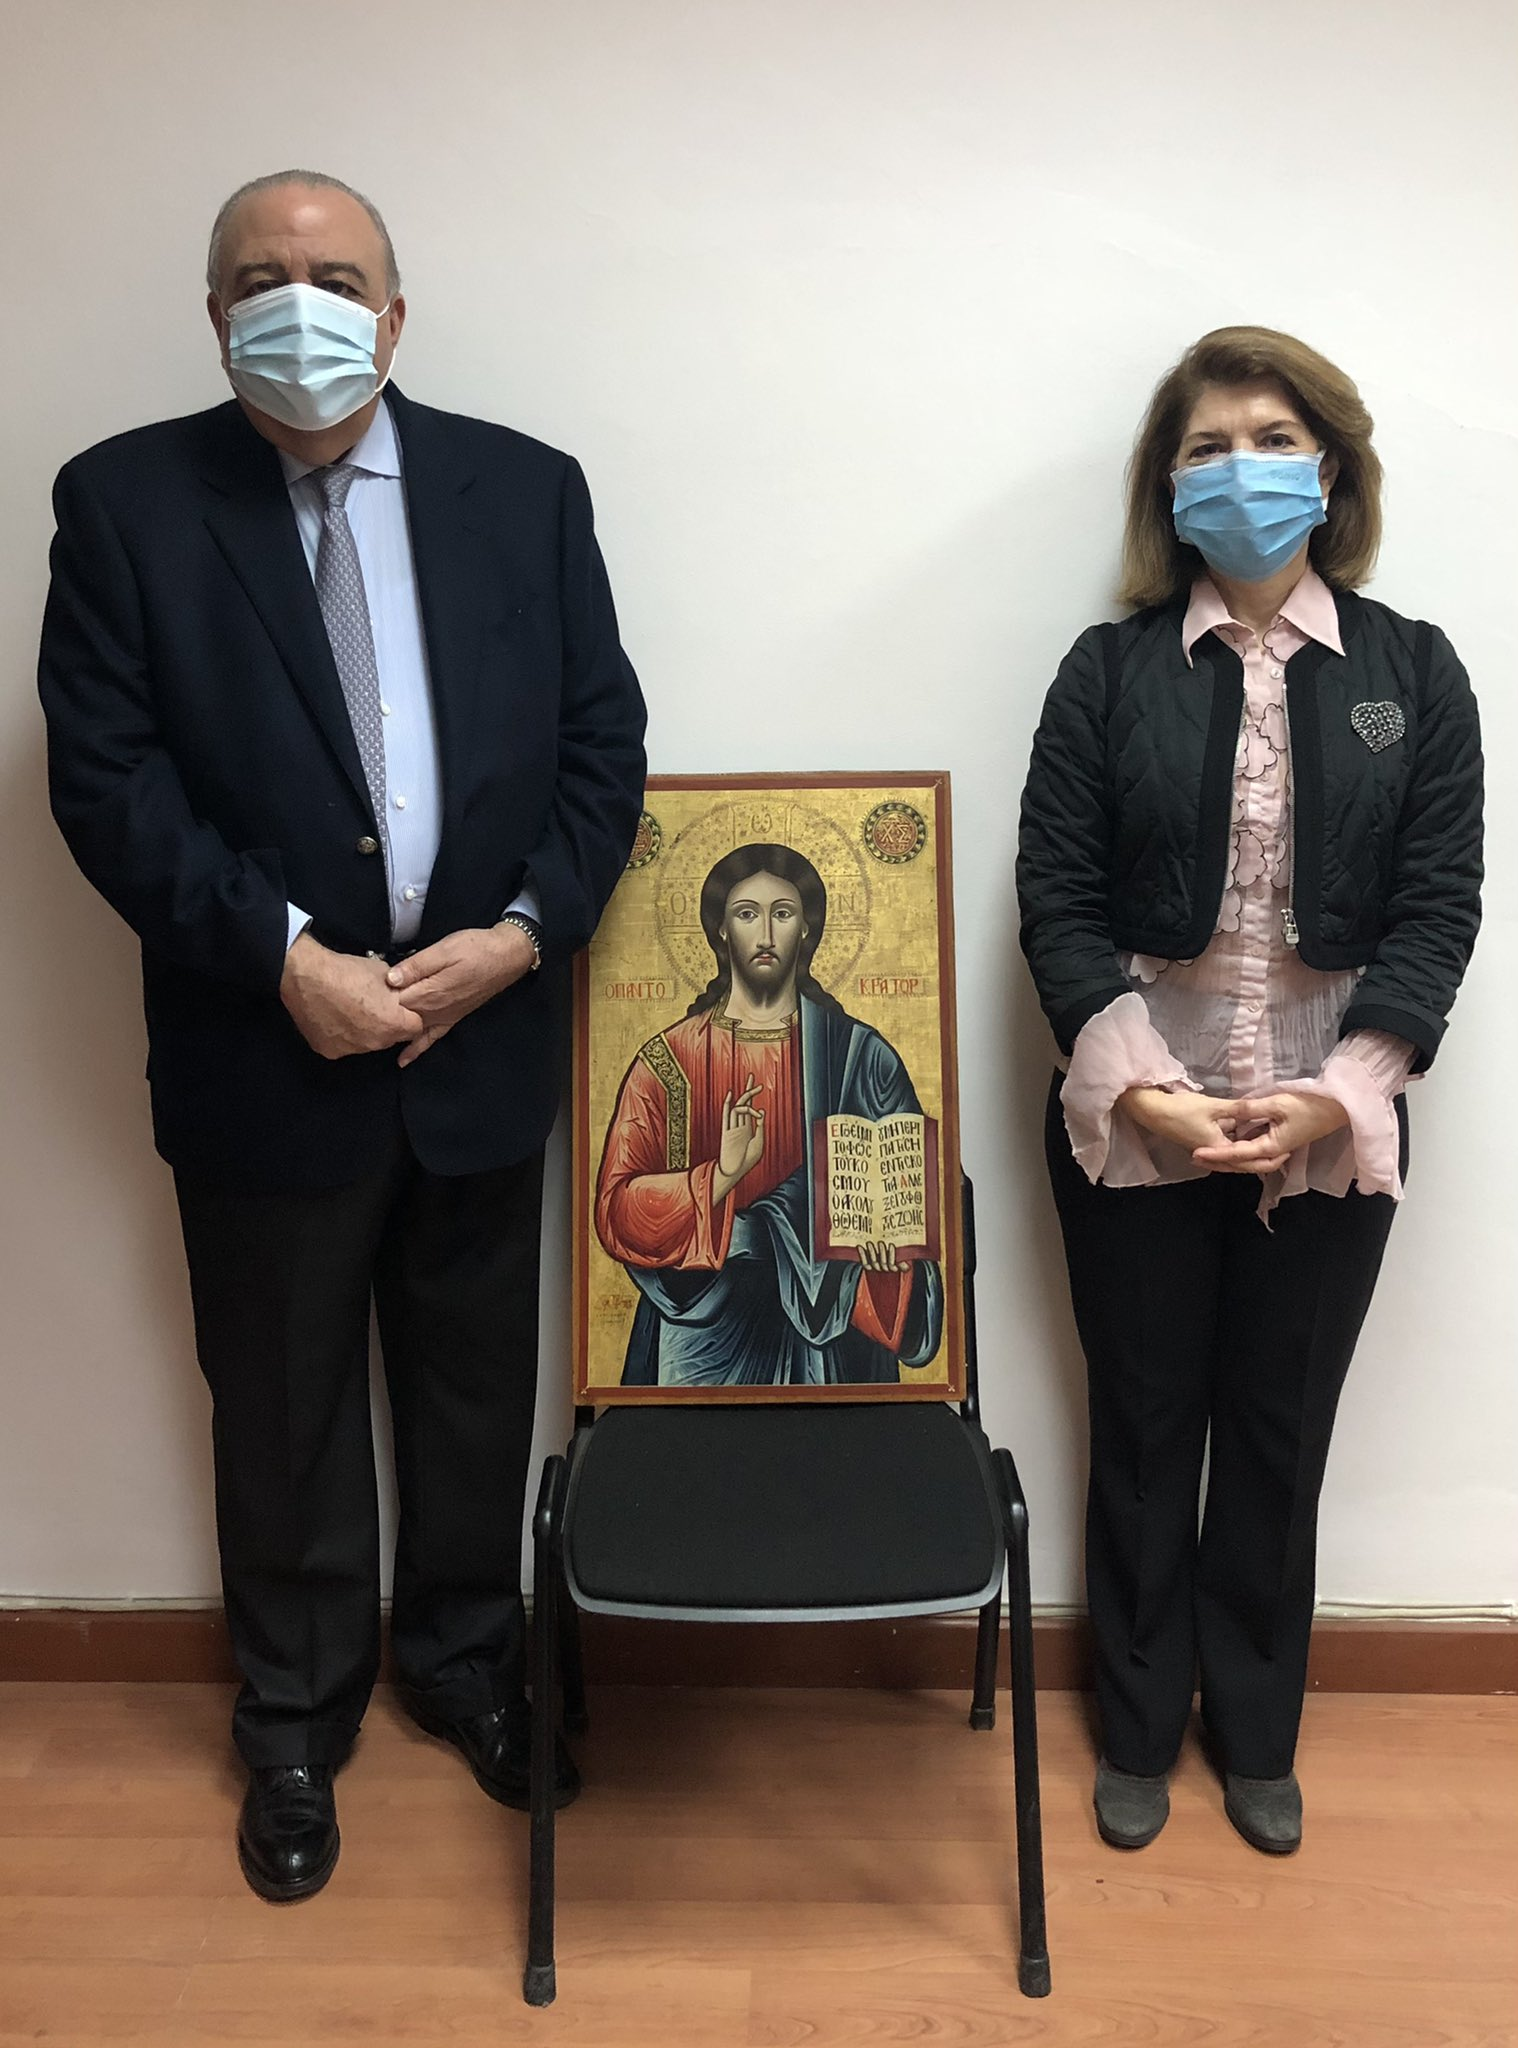 The Lebanese authorities seized the icons during an auction and returned them to Greece.